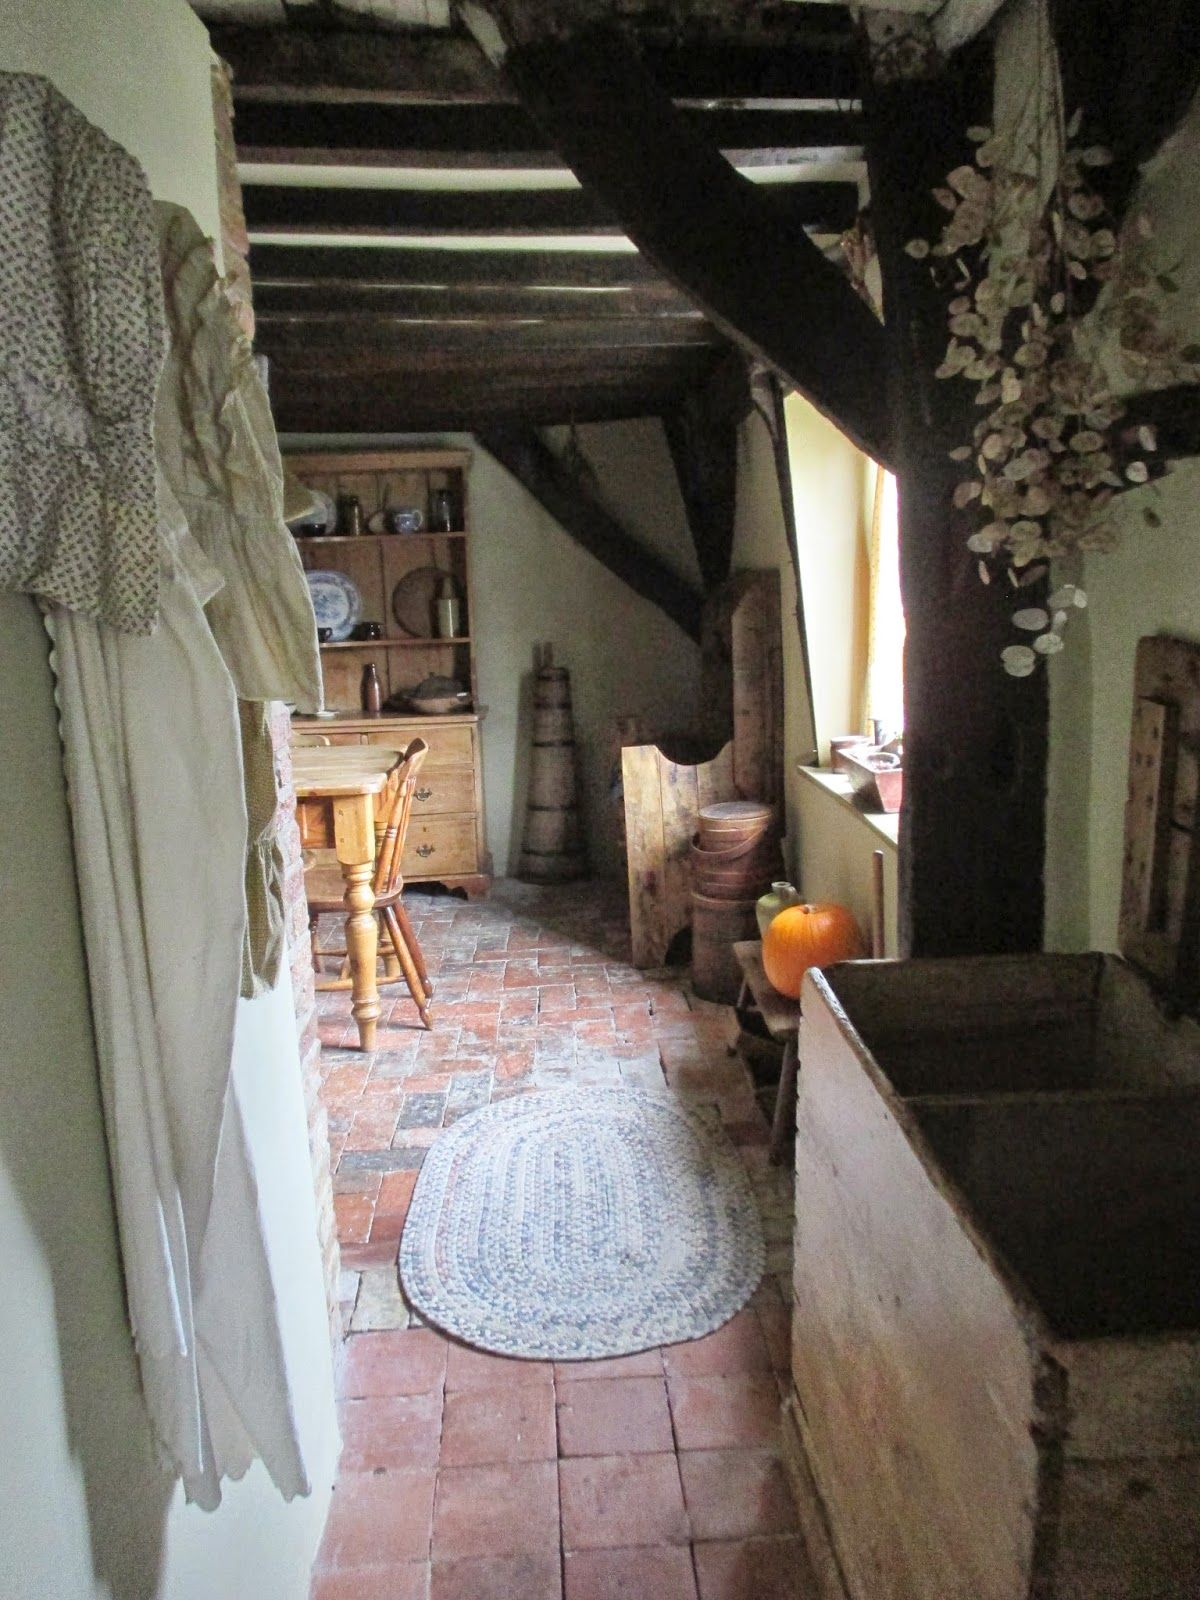 English country home interiors  Pin by Wise Woman on Hearth and Home  Pinterest  Primitives